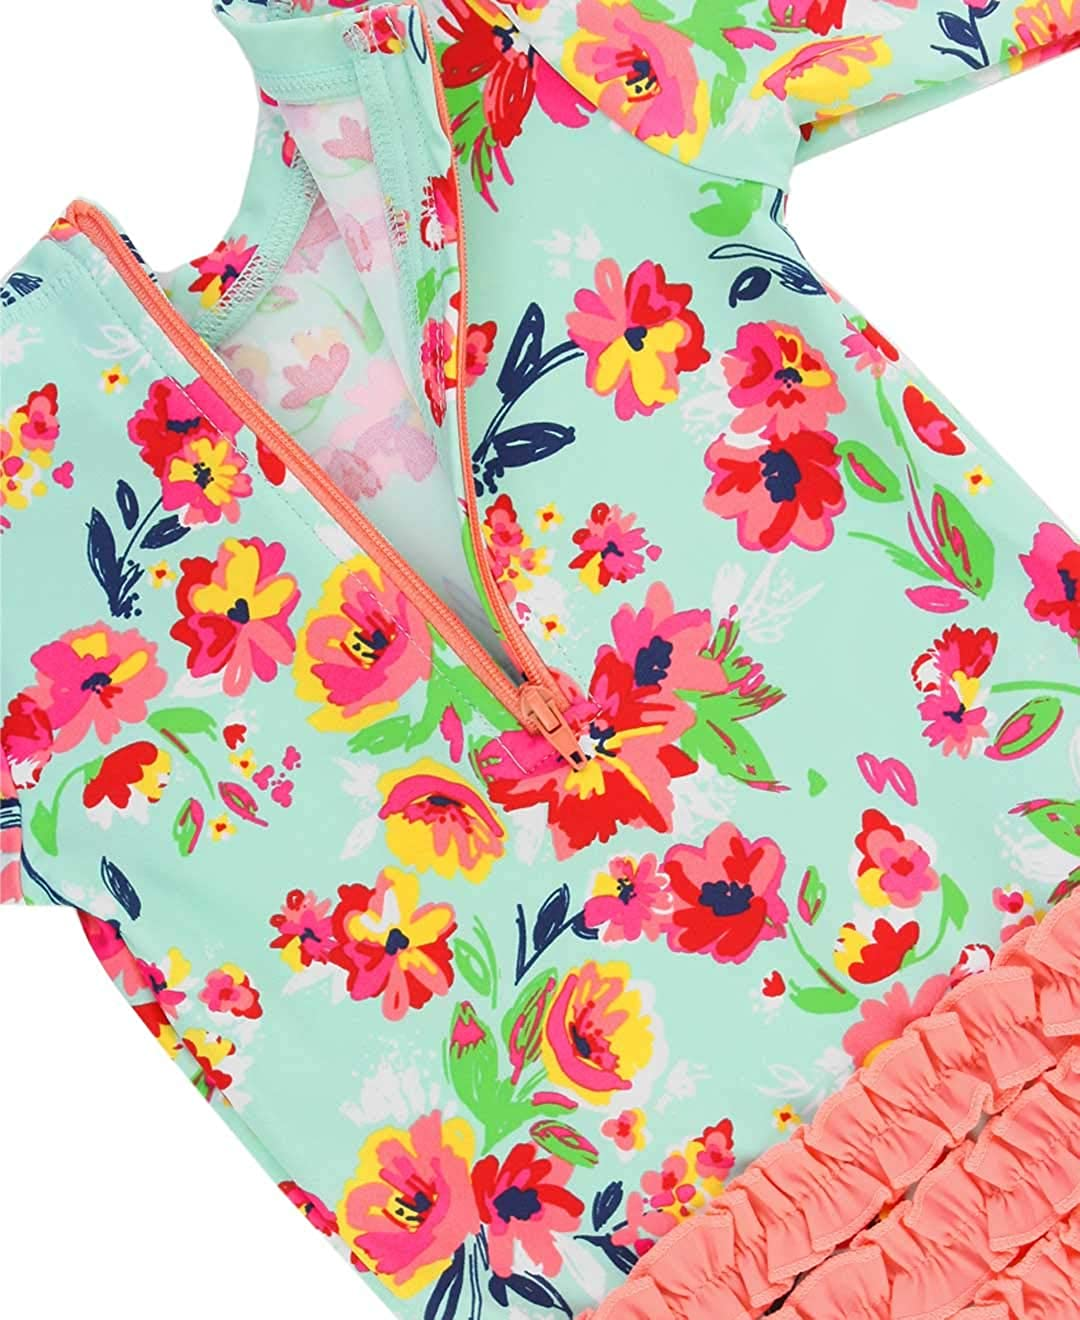 3-6m RuffleButts Baby//Toddler Girls Long Sleeve One Piece Swimsuit Painted Flowers with UPF 50 Sun Protection